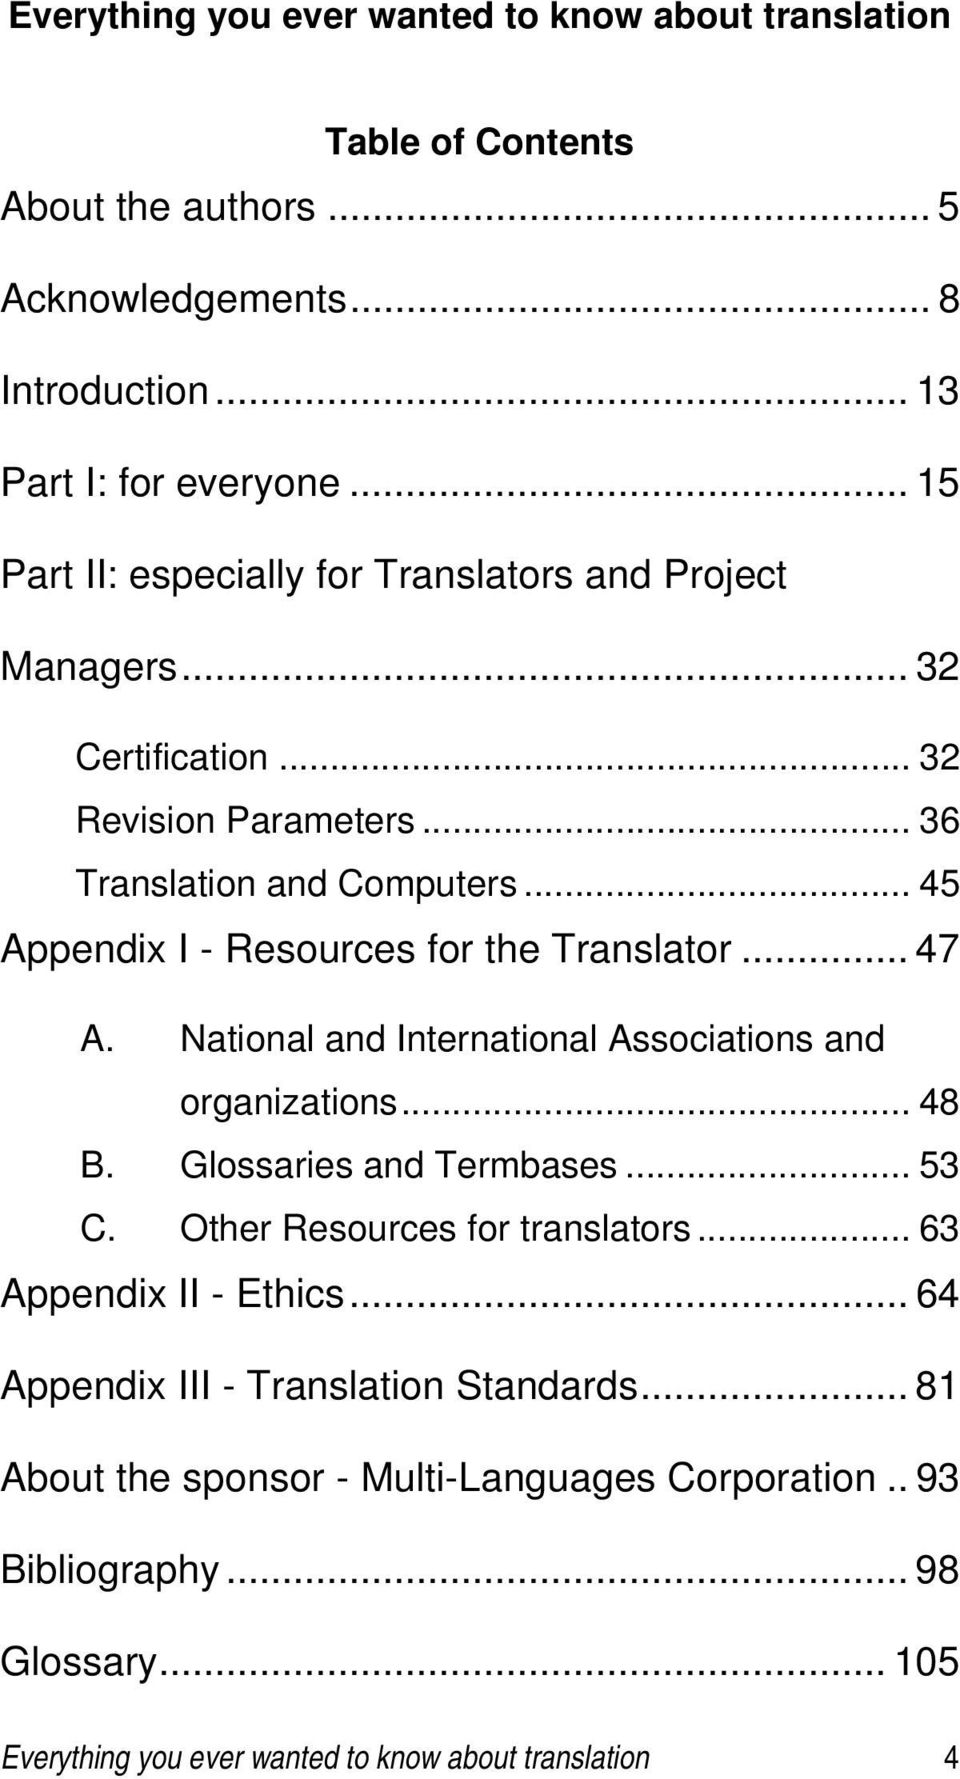 .. 45 Appendix I - Resources for the Translator... 47 A. National and International Associations and organizations... 48 B. Glossaries and Termbases... 53 C.